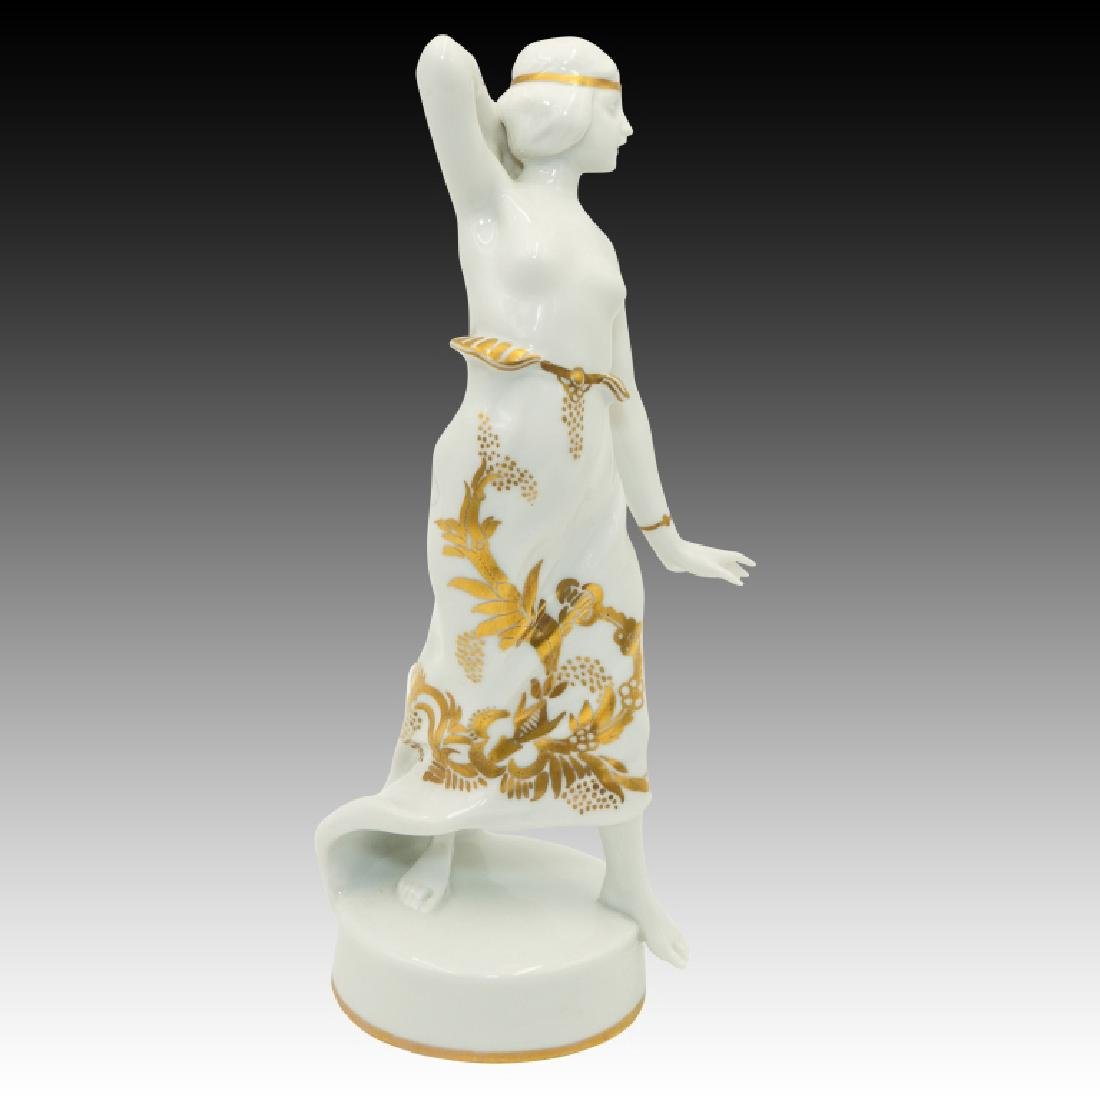 Rosenthal Semi Nude Girl Dancer